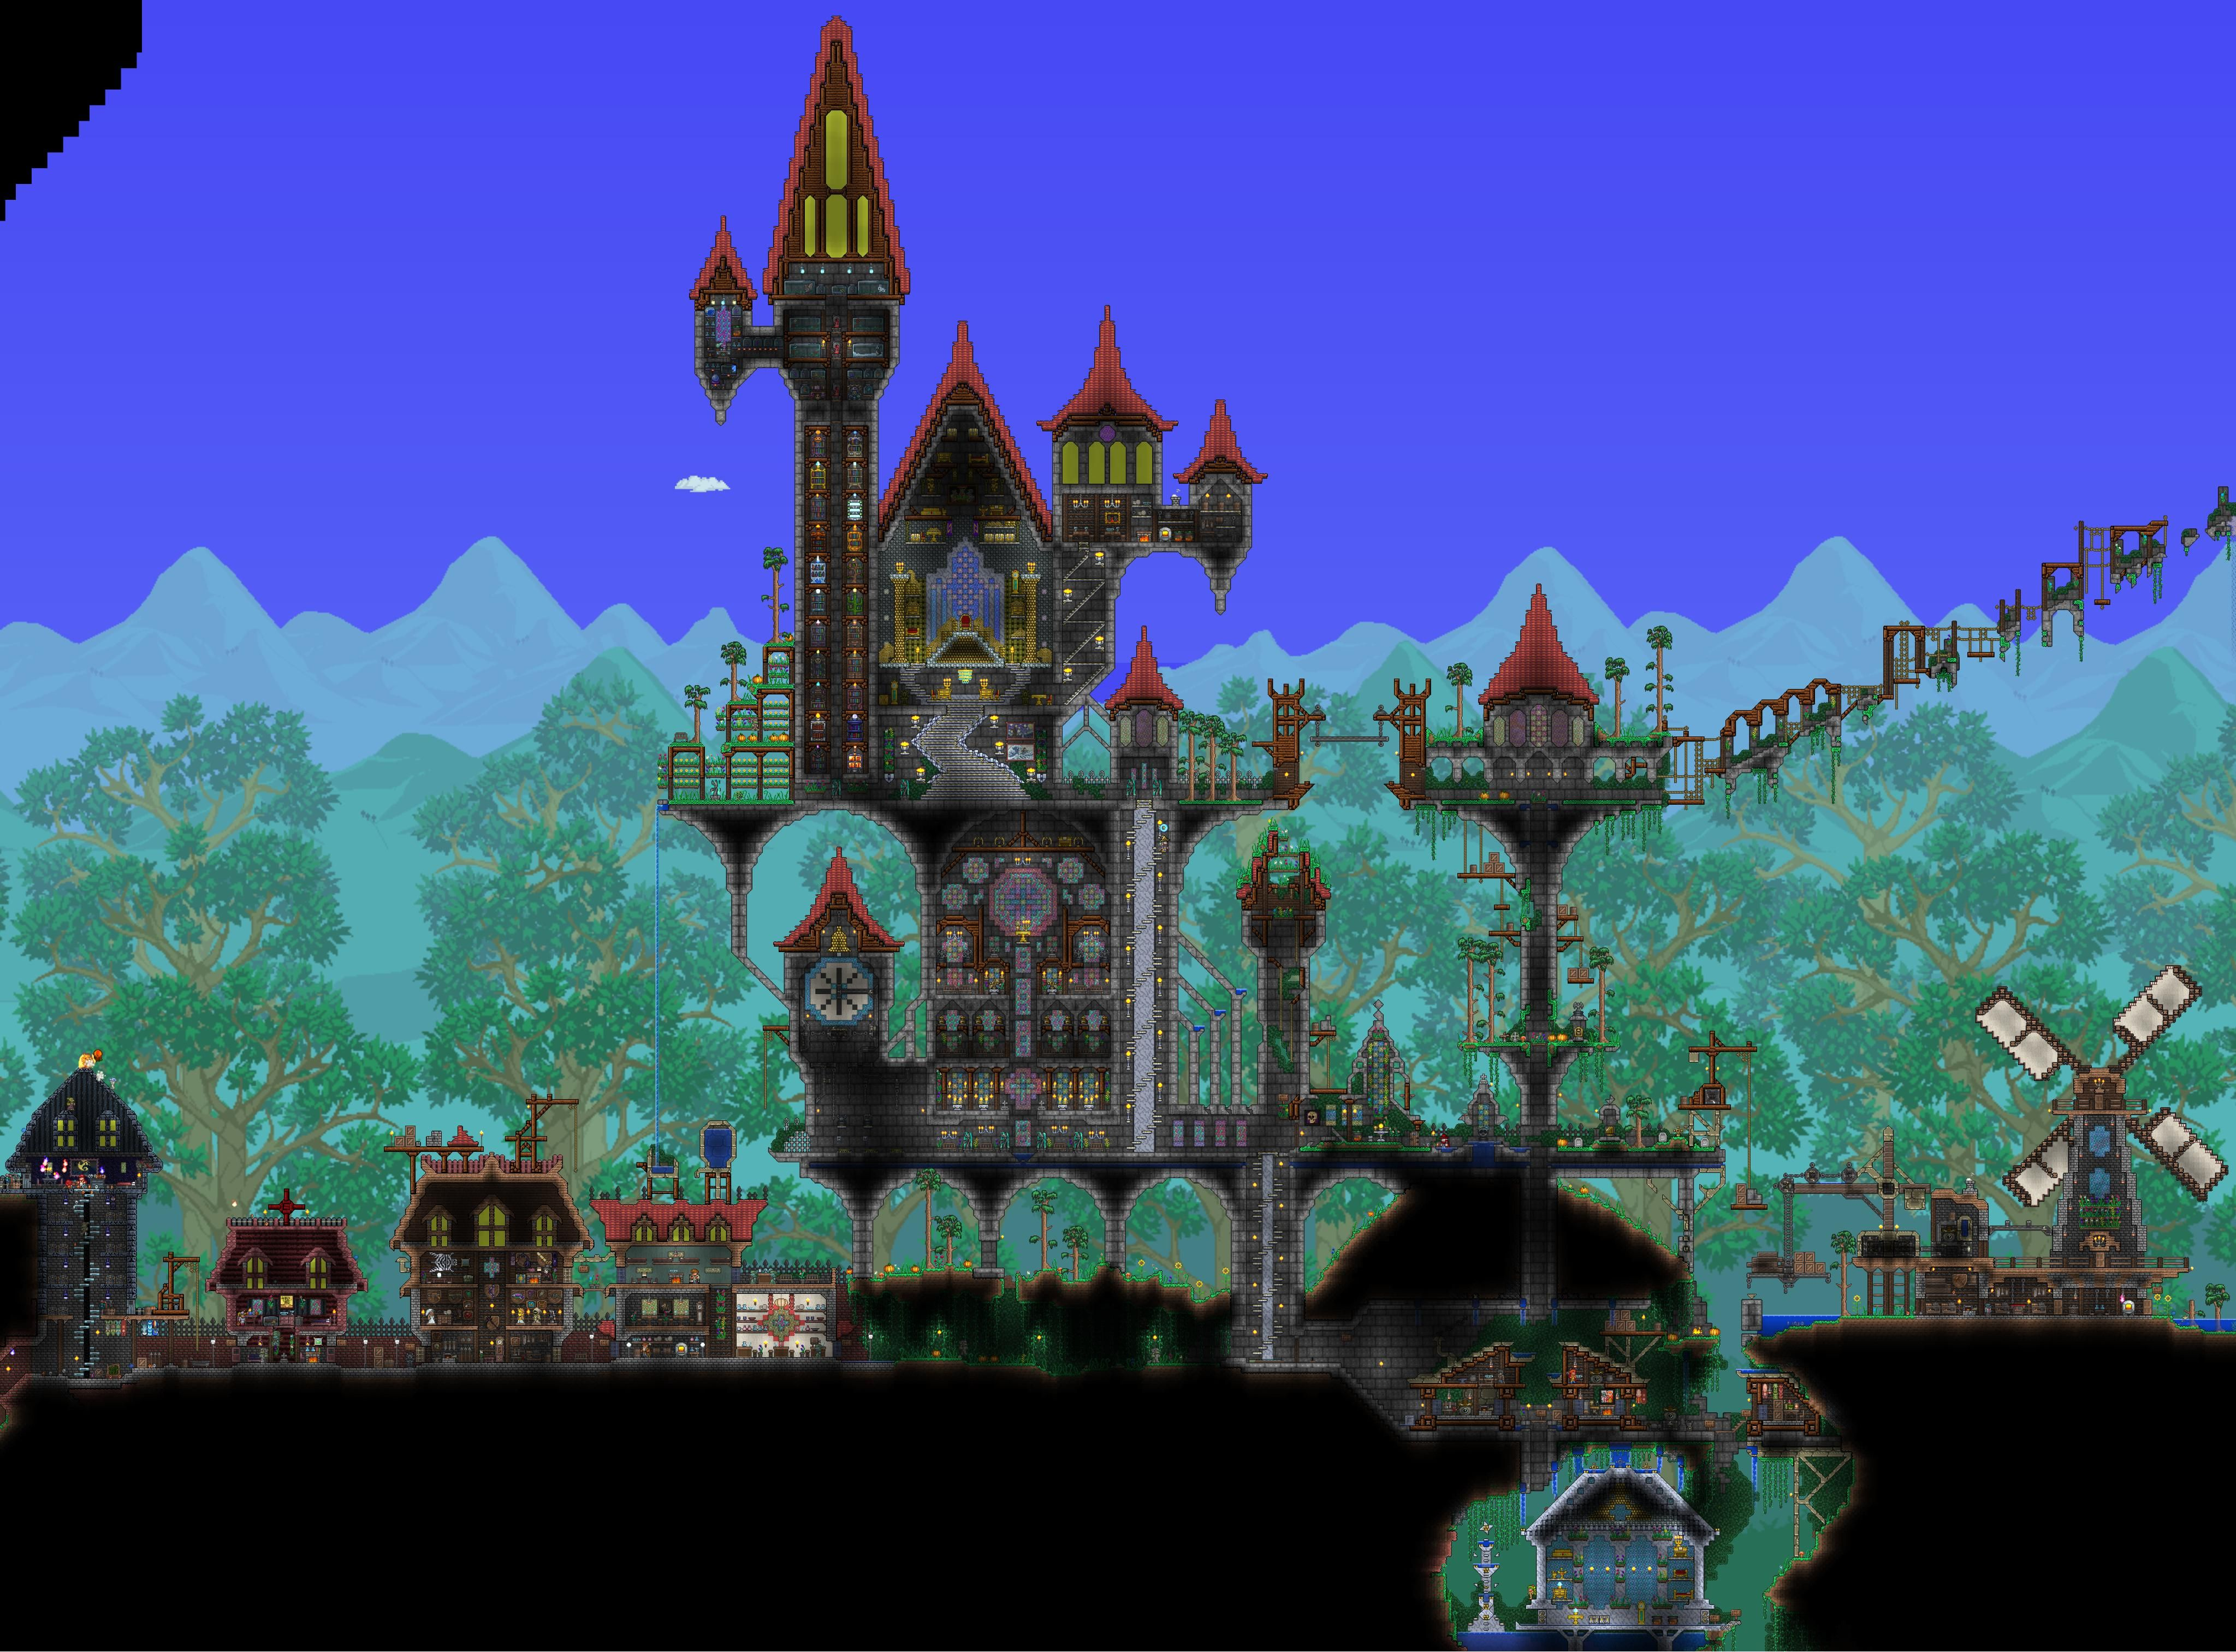 Terraria castle tower castle tower any tips terraria - Terraria Castle Tower Castle Tower Any Tips Terraria 30